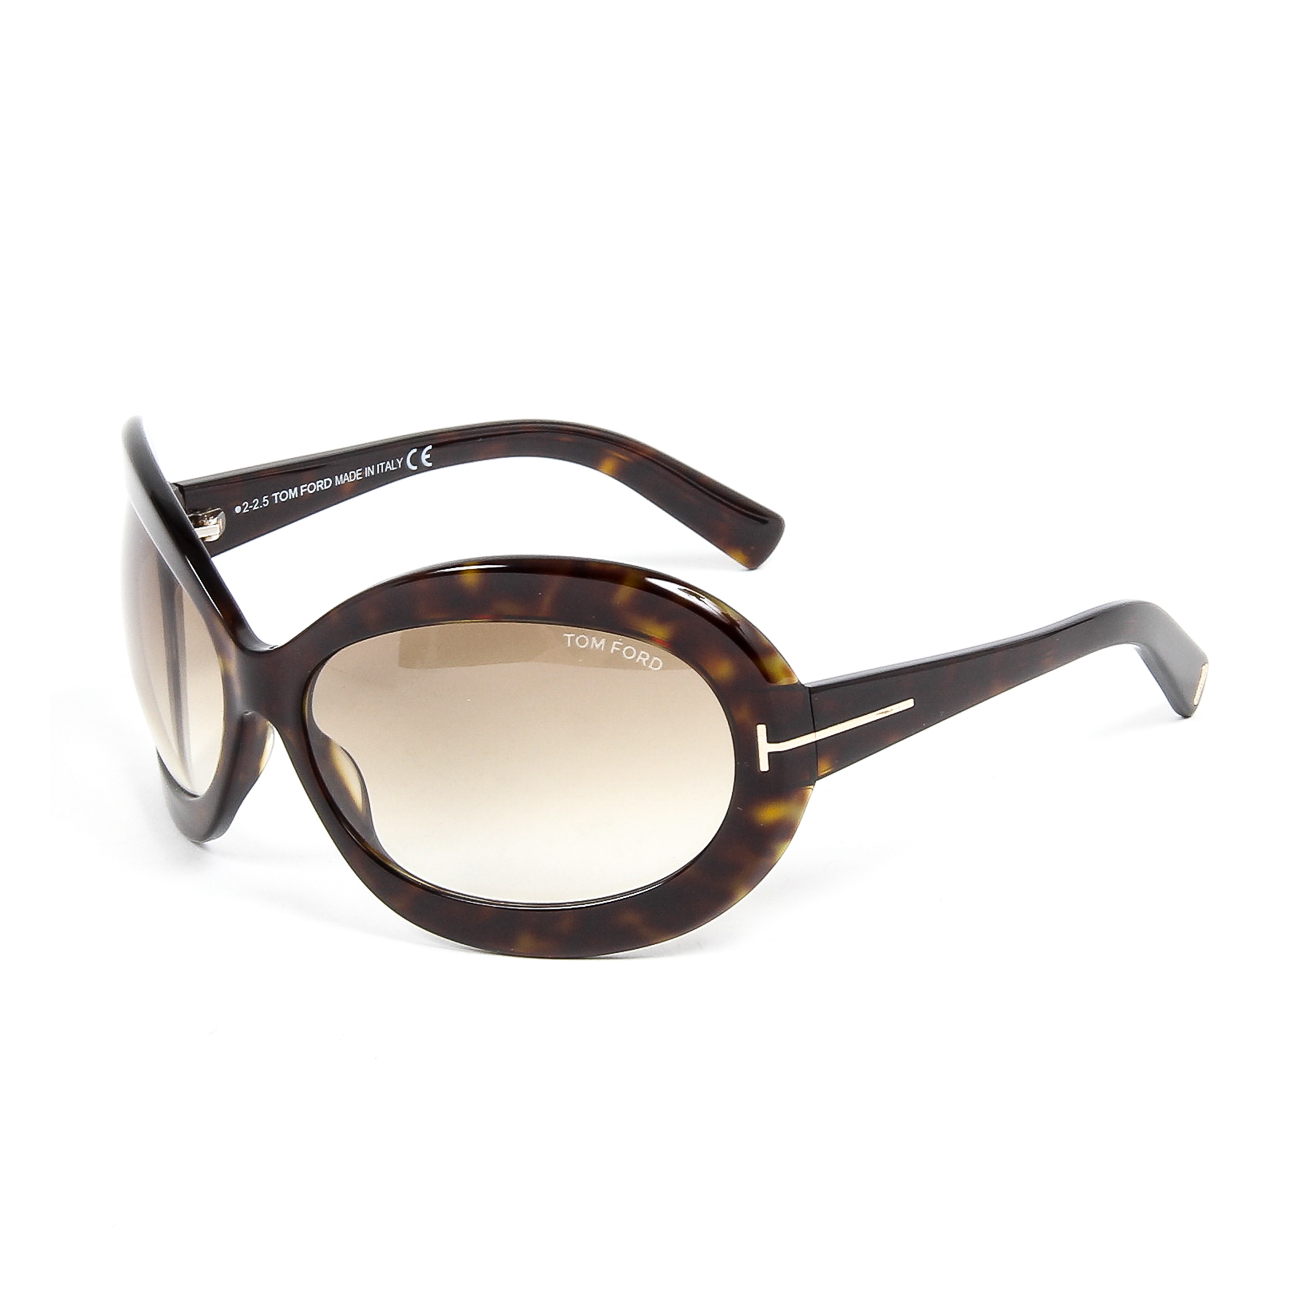 women sunglasses tom ford womens sunglasses edie ft0428 68 52f. Cars Review. Best American Auto & Cars Review